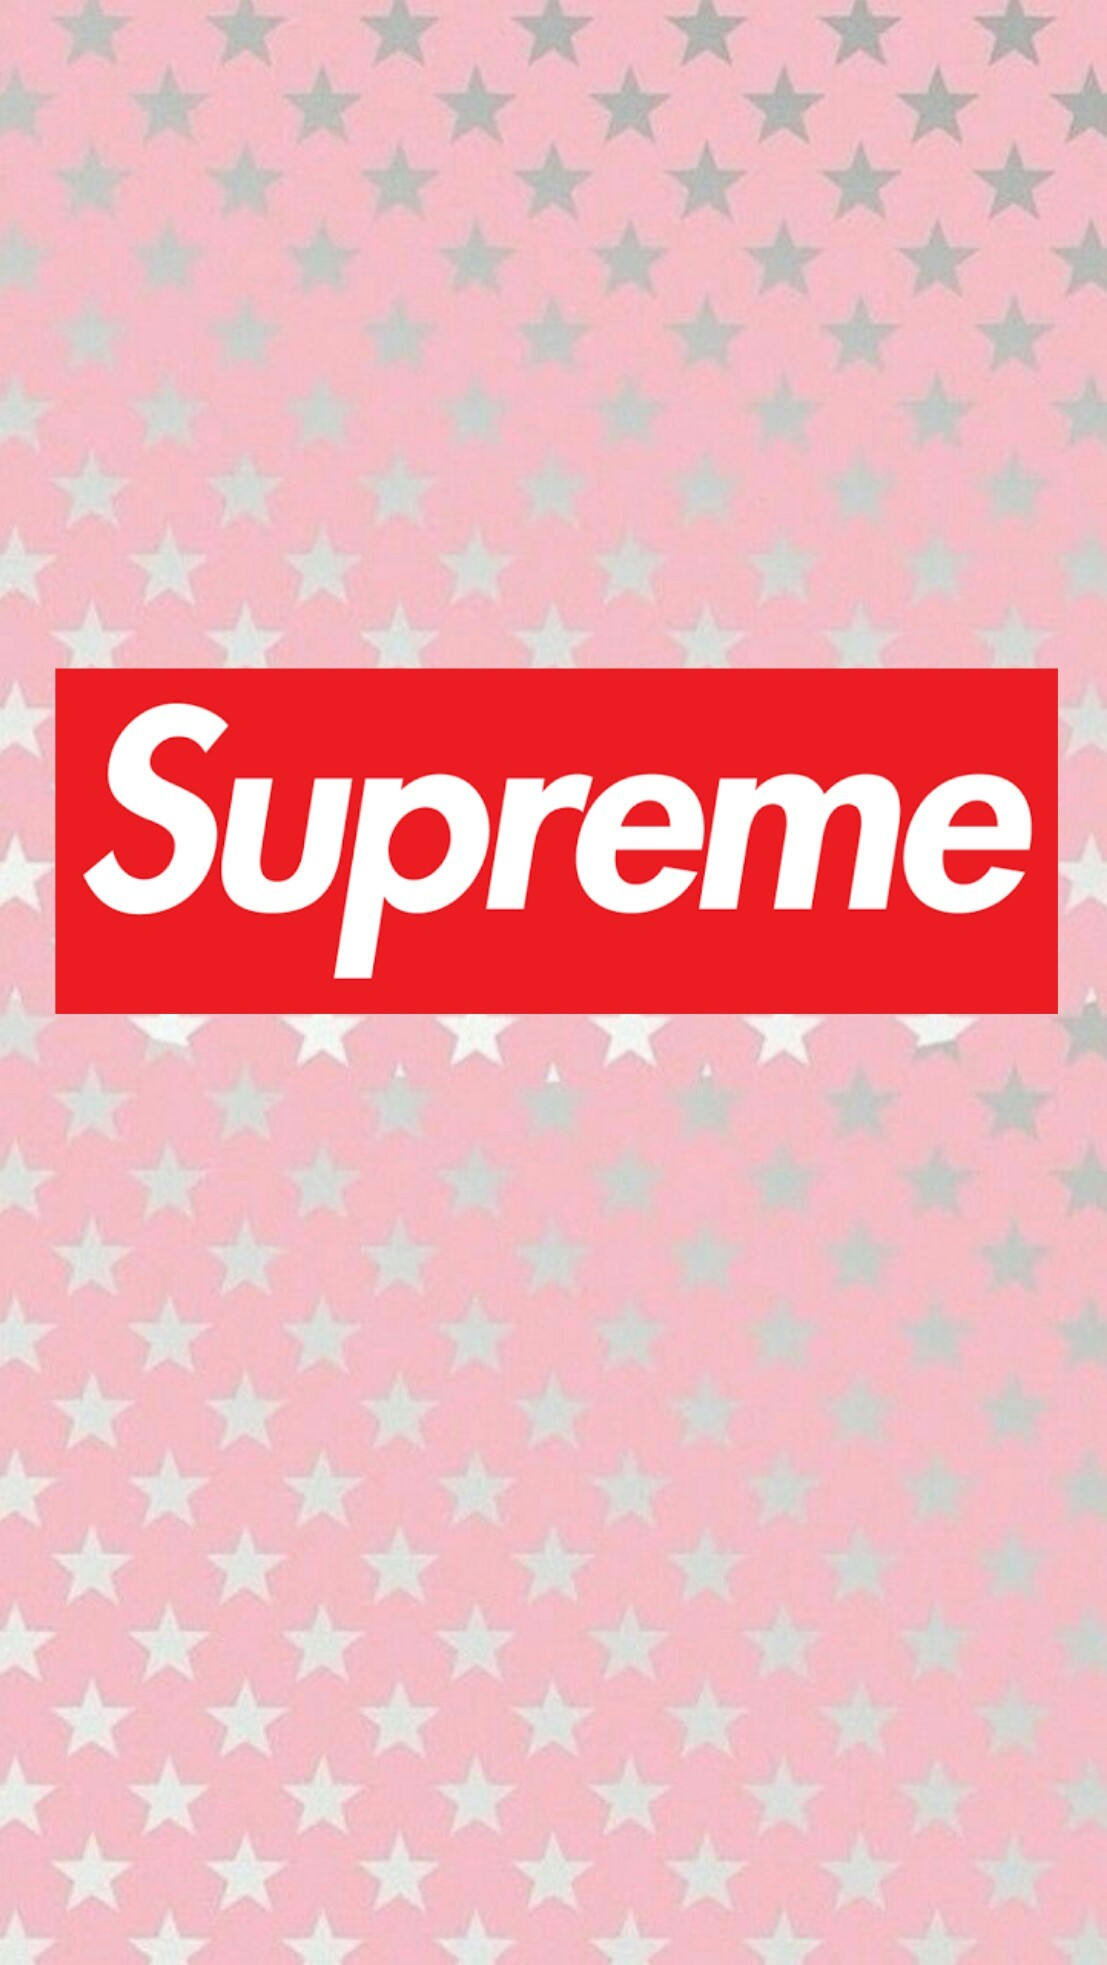 Supreme Wallpaper ·① Download Free High Resolution